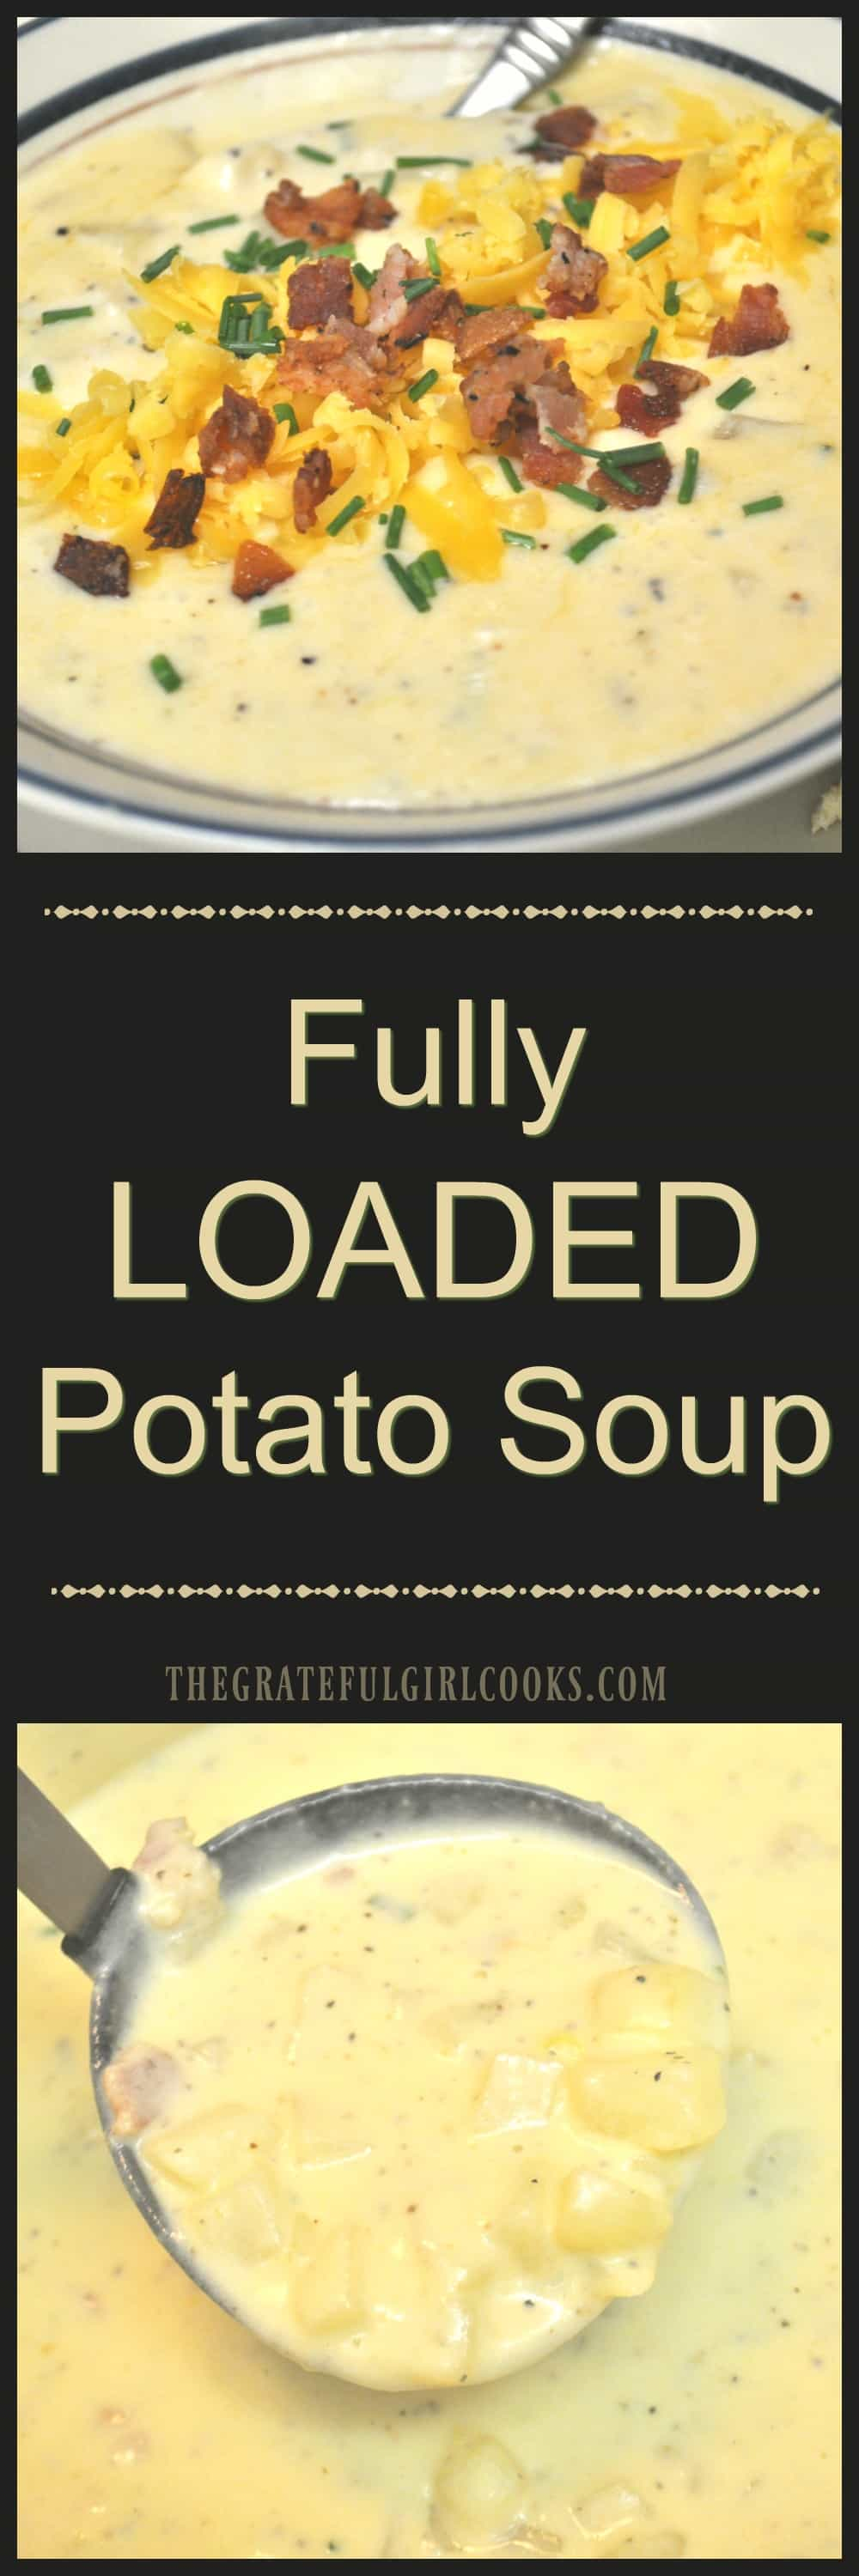 Fully Loaded Potato Soup / The Grateful Girl Cooks!